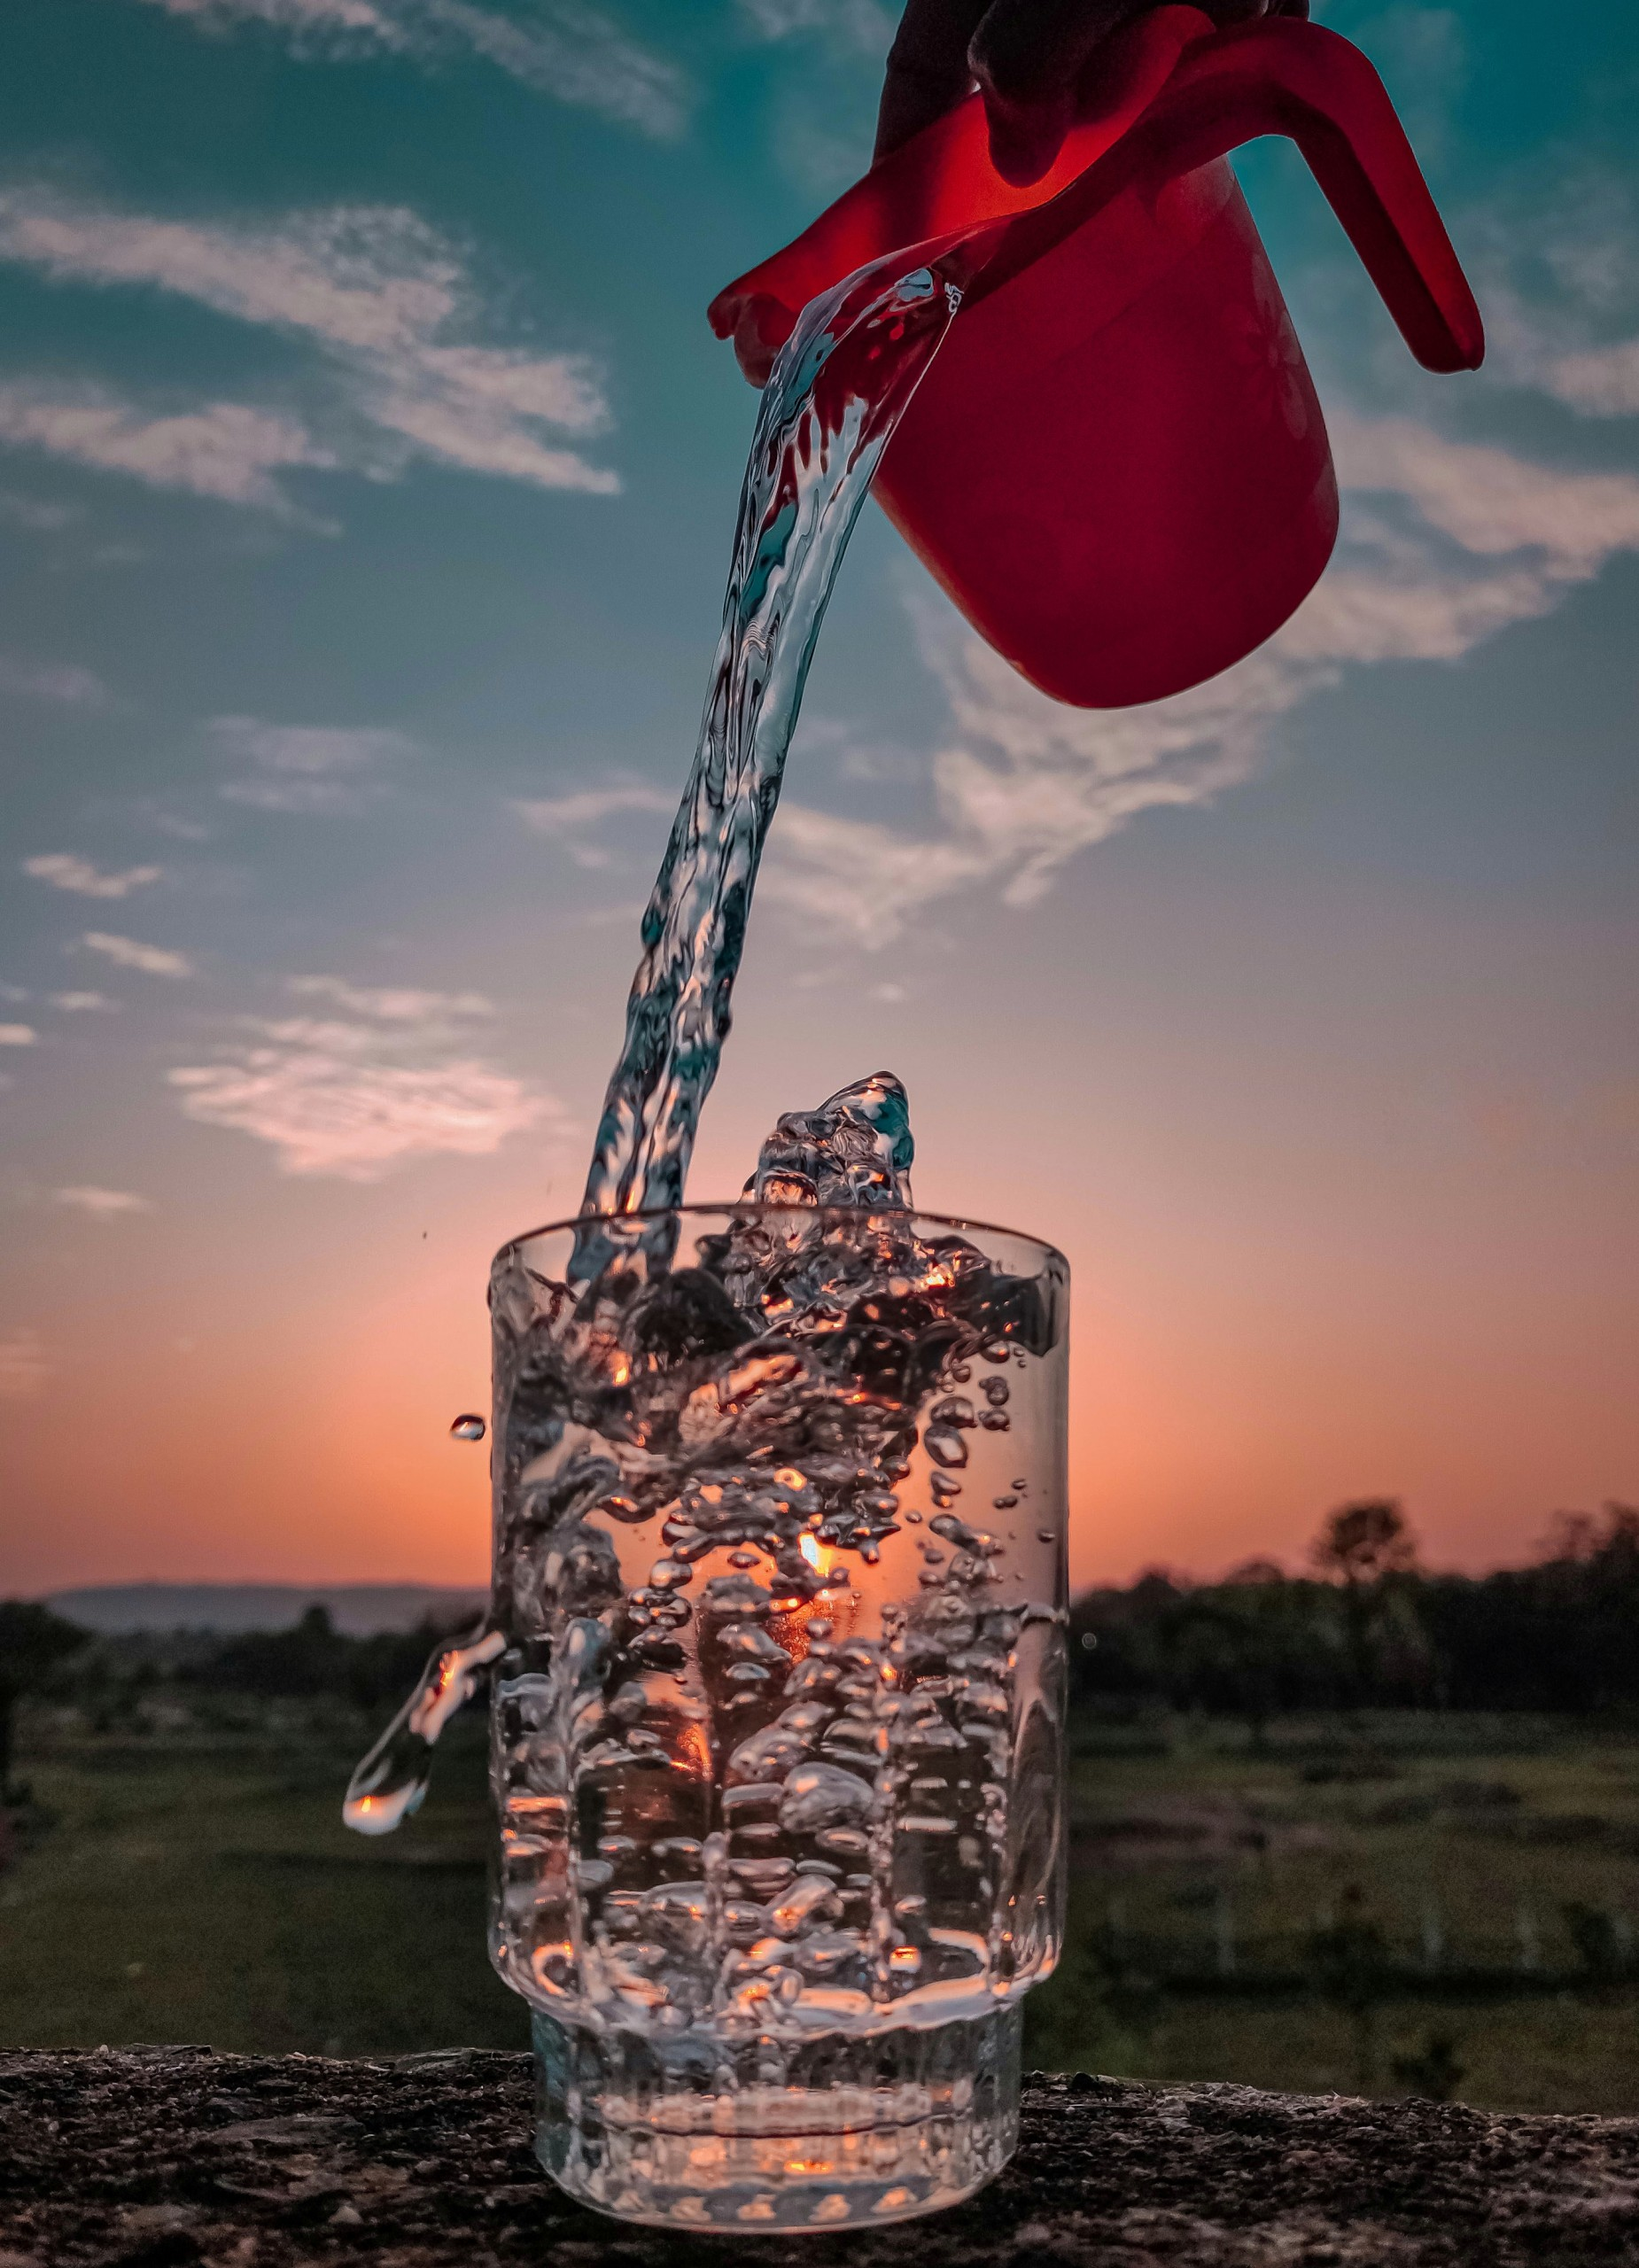 Glass of water and sunset